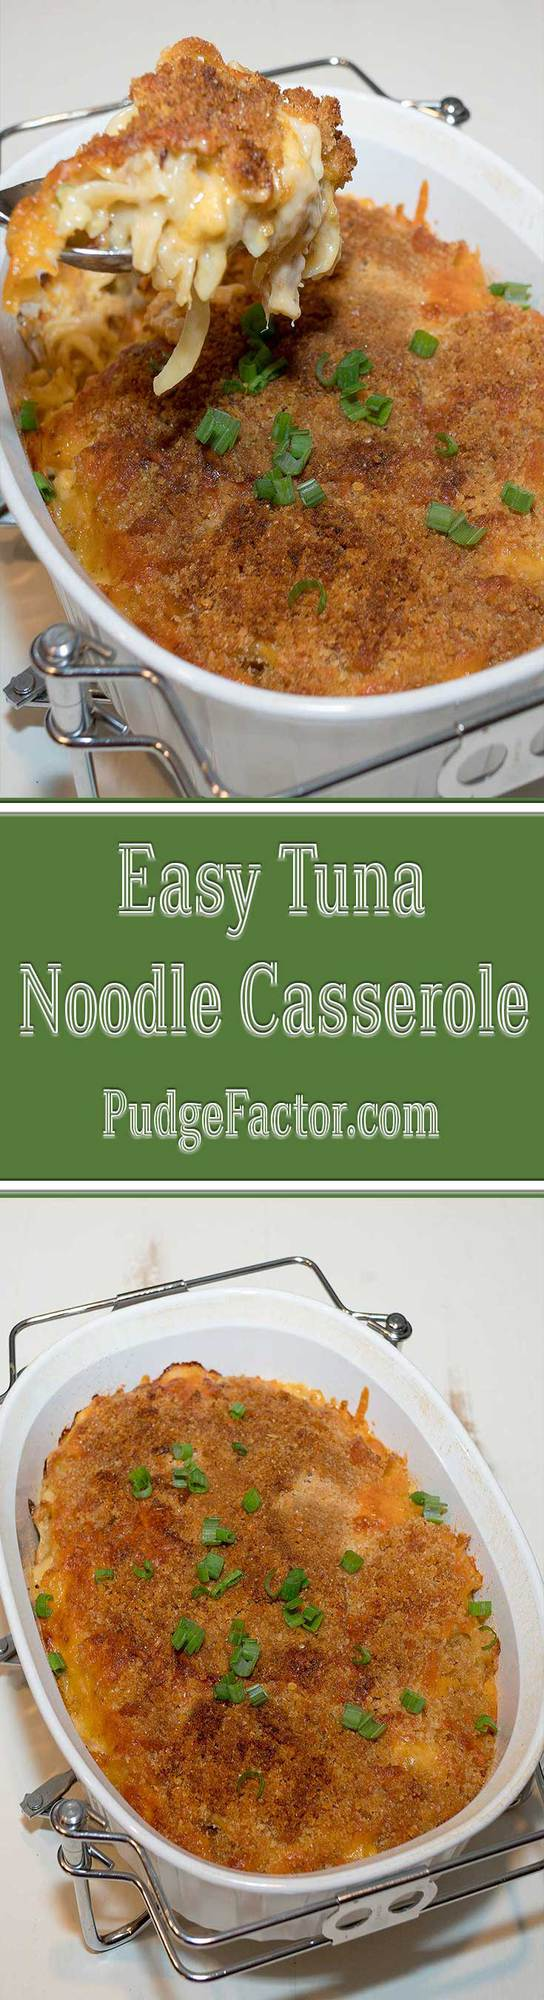 Easy Tuna Noodle Casserole - The Ultimate Comfort Food.